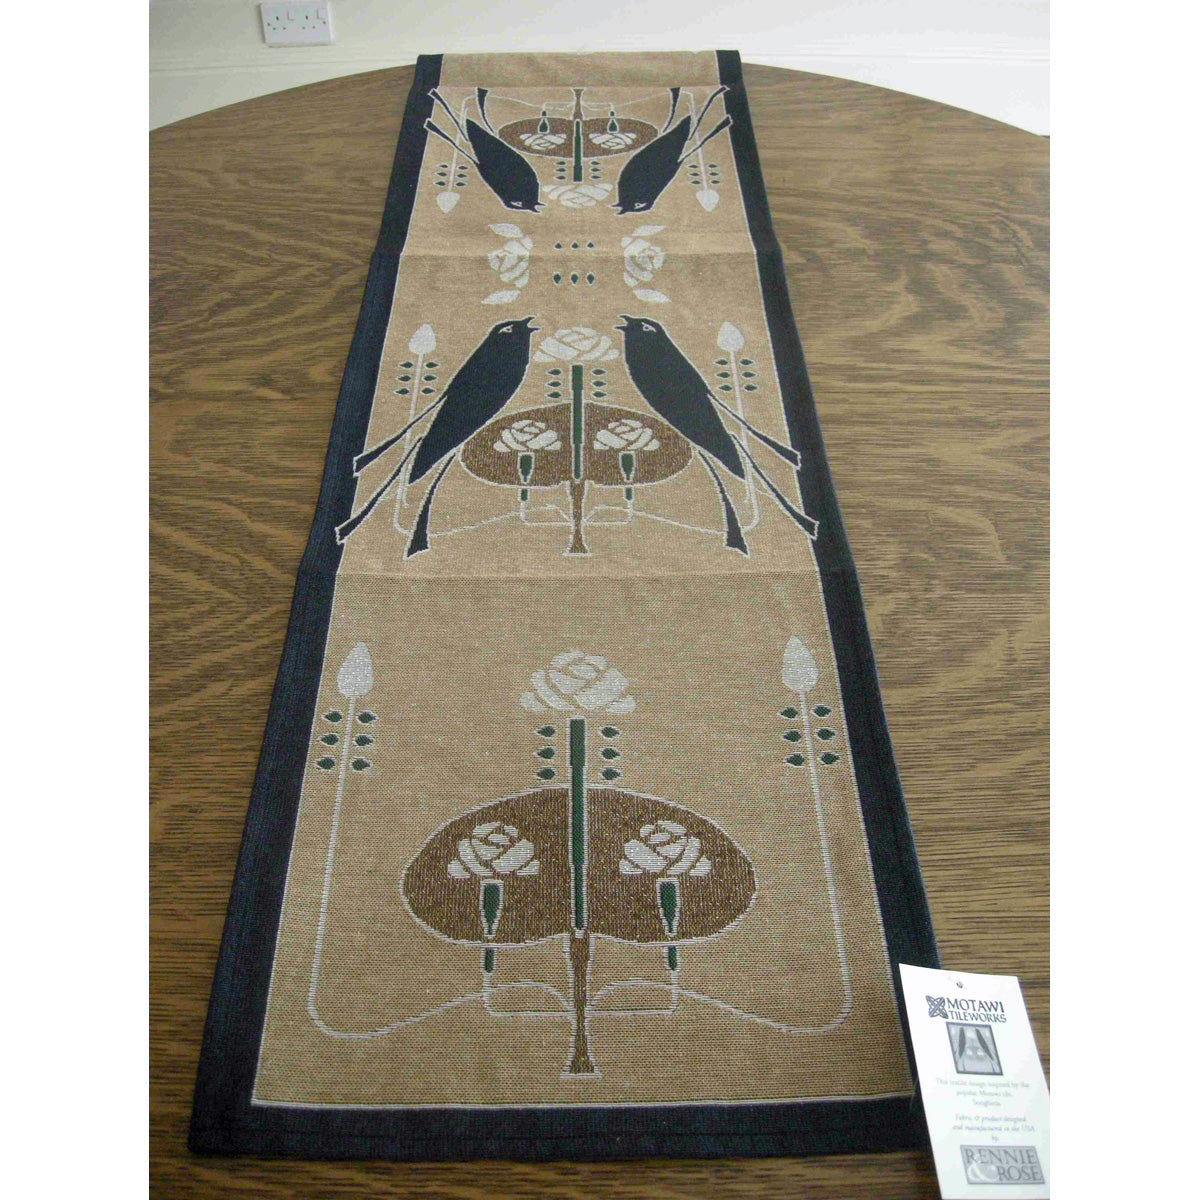 <p>Lovely woven table runner in the 'Songbirds' design by Talwin Morris.</p>